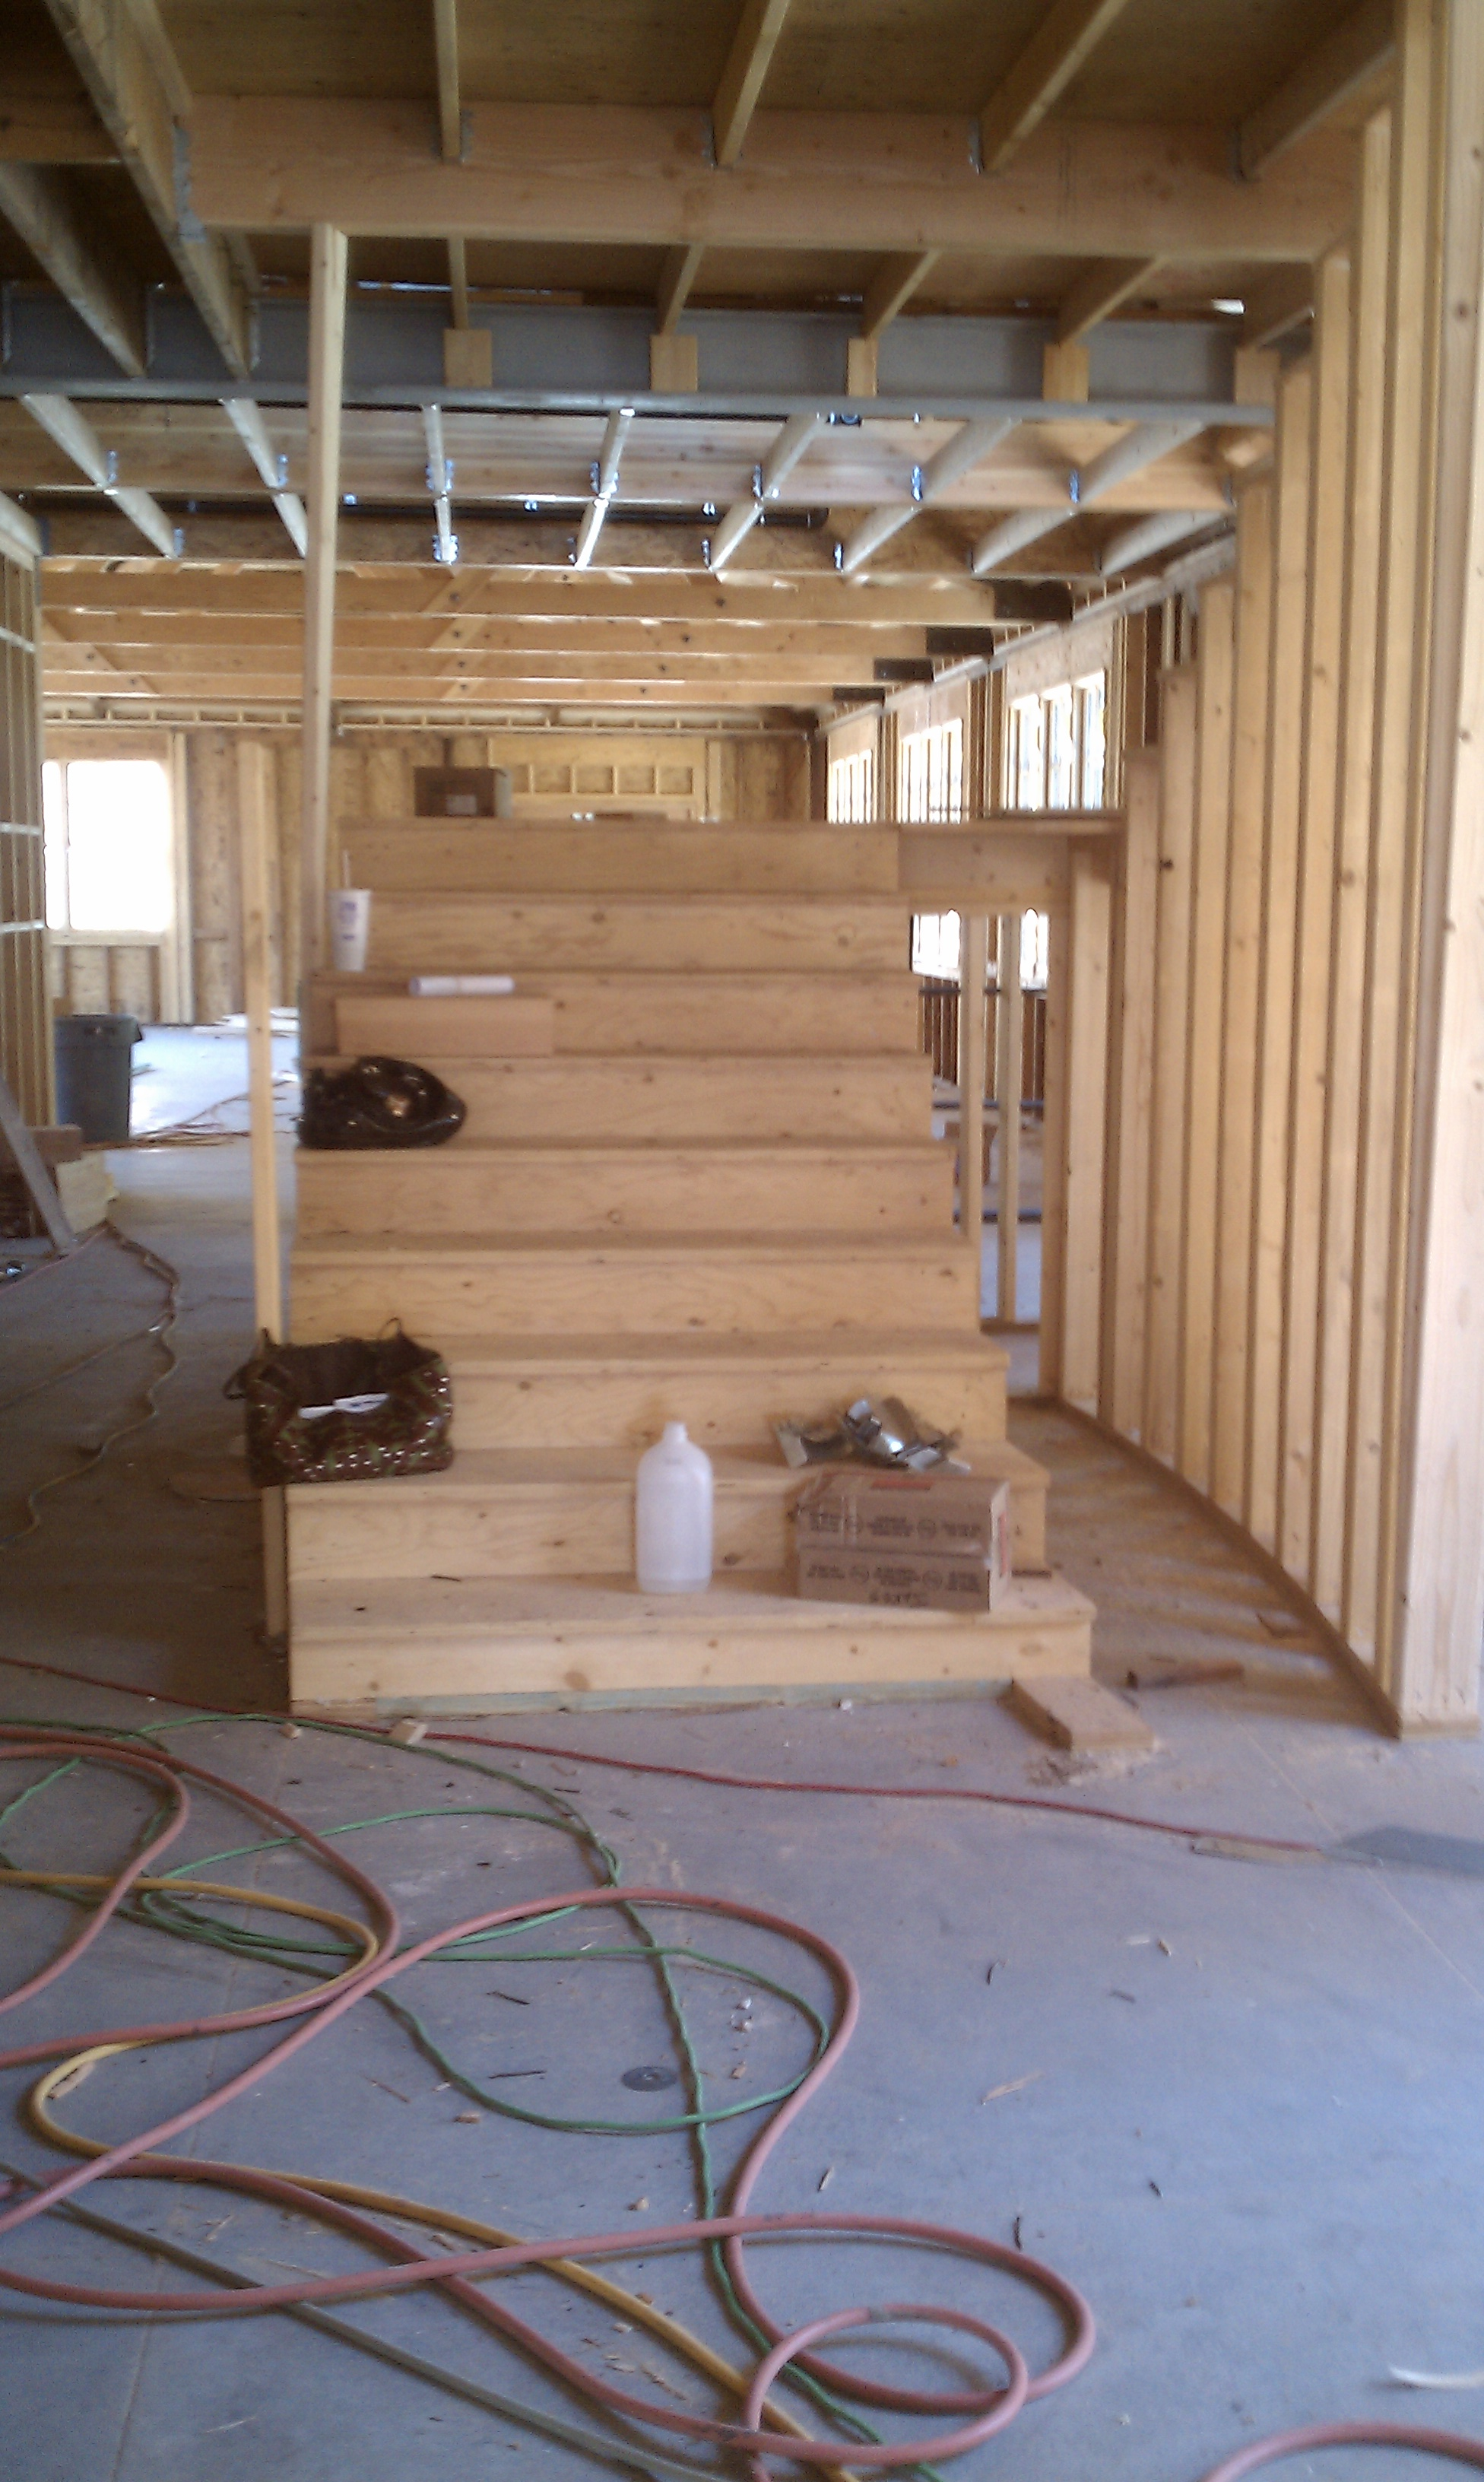 The Staircase Construction